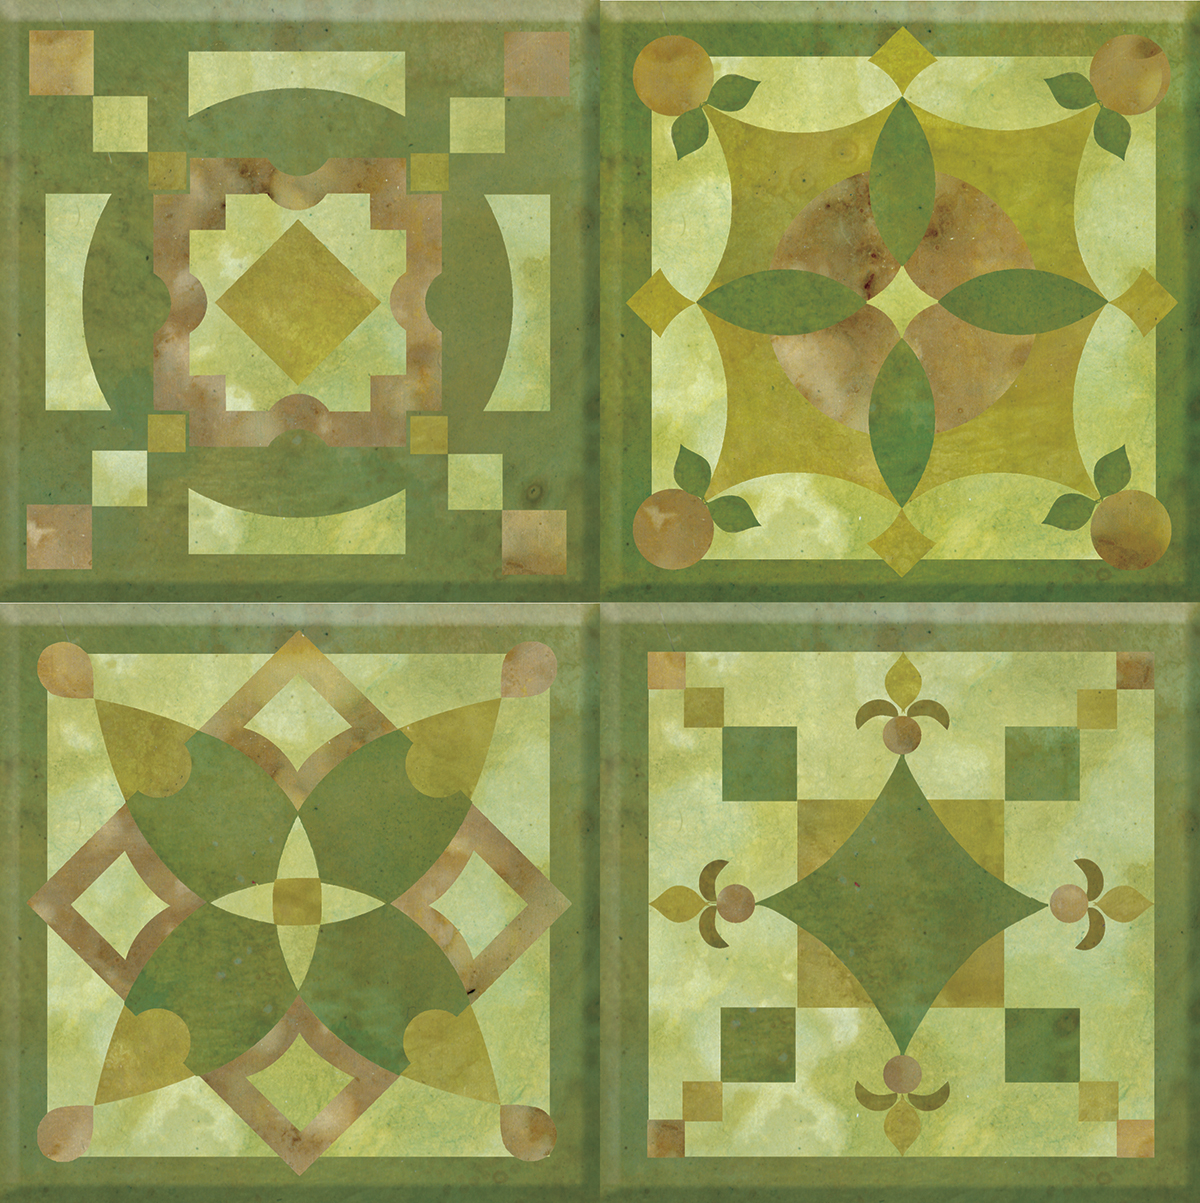 IdeaStix Knot Garden TileStix - Original Premium 4-Piece Peel and Stick Tile Décor